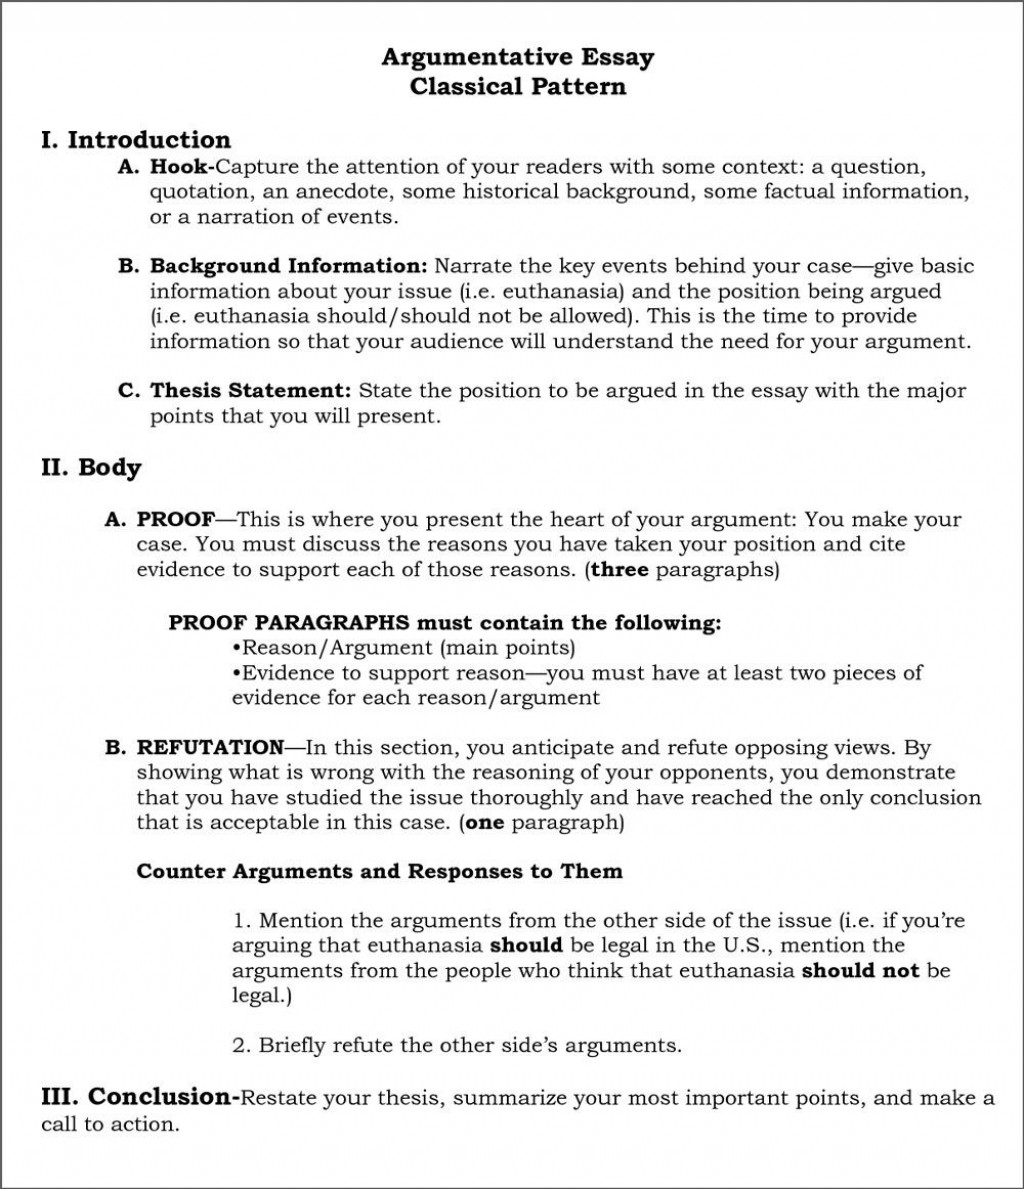 012 How To Conclude An Argumentative Essay Writing Service Pinterest Introduction Pdf Ppt Step By About Fire Prevention Quiz Edgenuity Middle School Top Teach Write A Closing Paragraph For Large